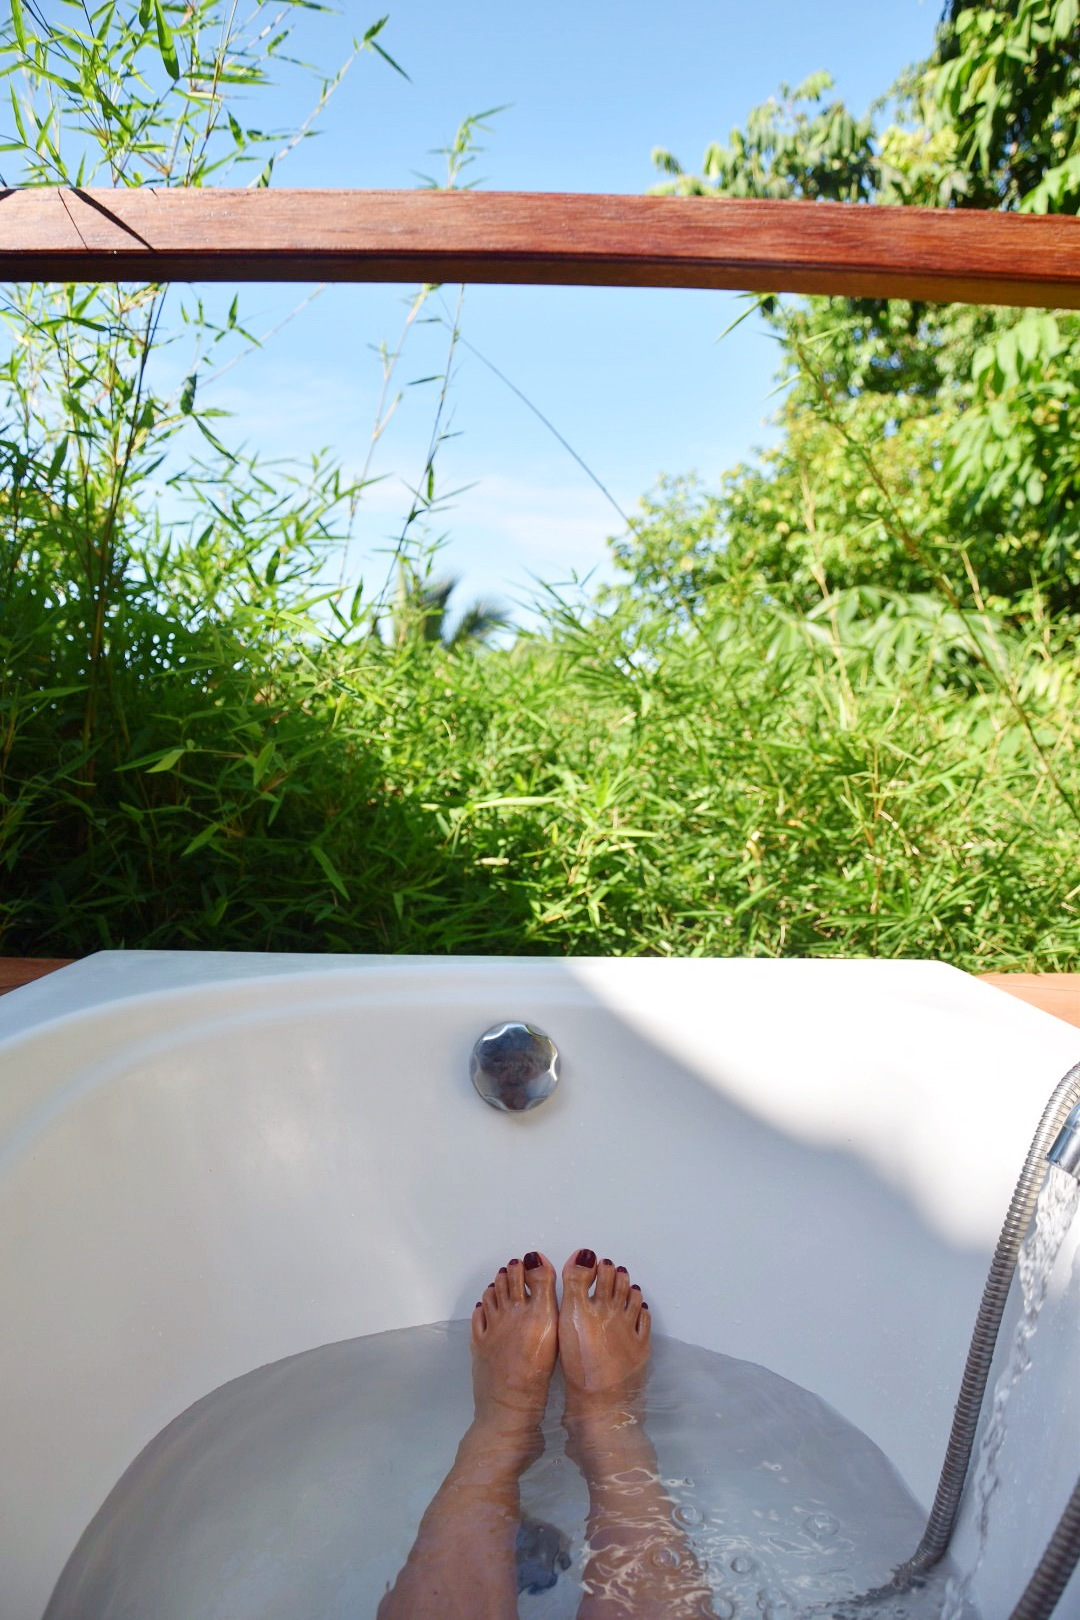 5-tips-for-a-lazy-sunday-irene-van-guin-bath-tub-outdoor-jungle-bamboo-the-sanctuary-thailand-koh-phangan